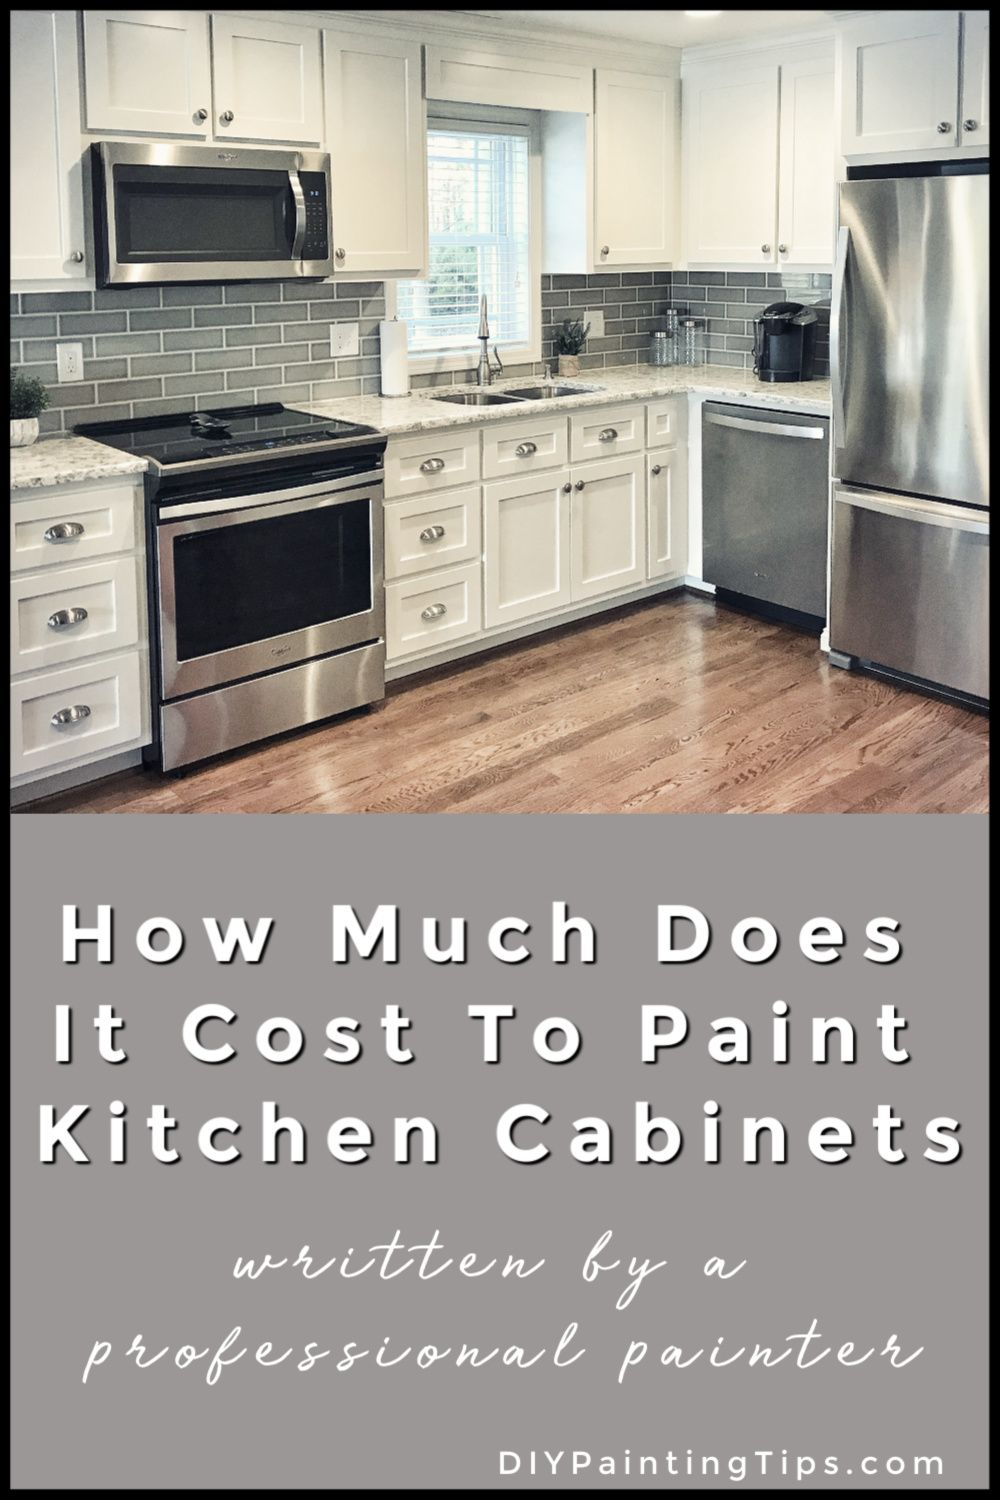 How Much Does It Cost To Paint Kitchen Cabinets In 2020 Kitchen Paint Painting Kitchen Cabinets Diy Interior House Painting